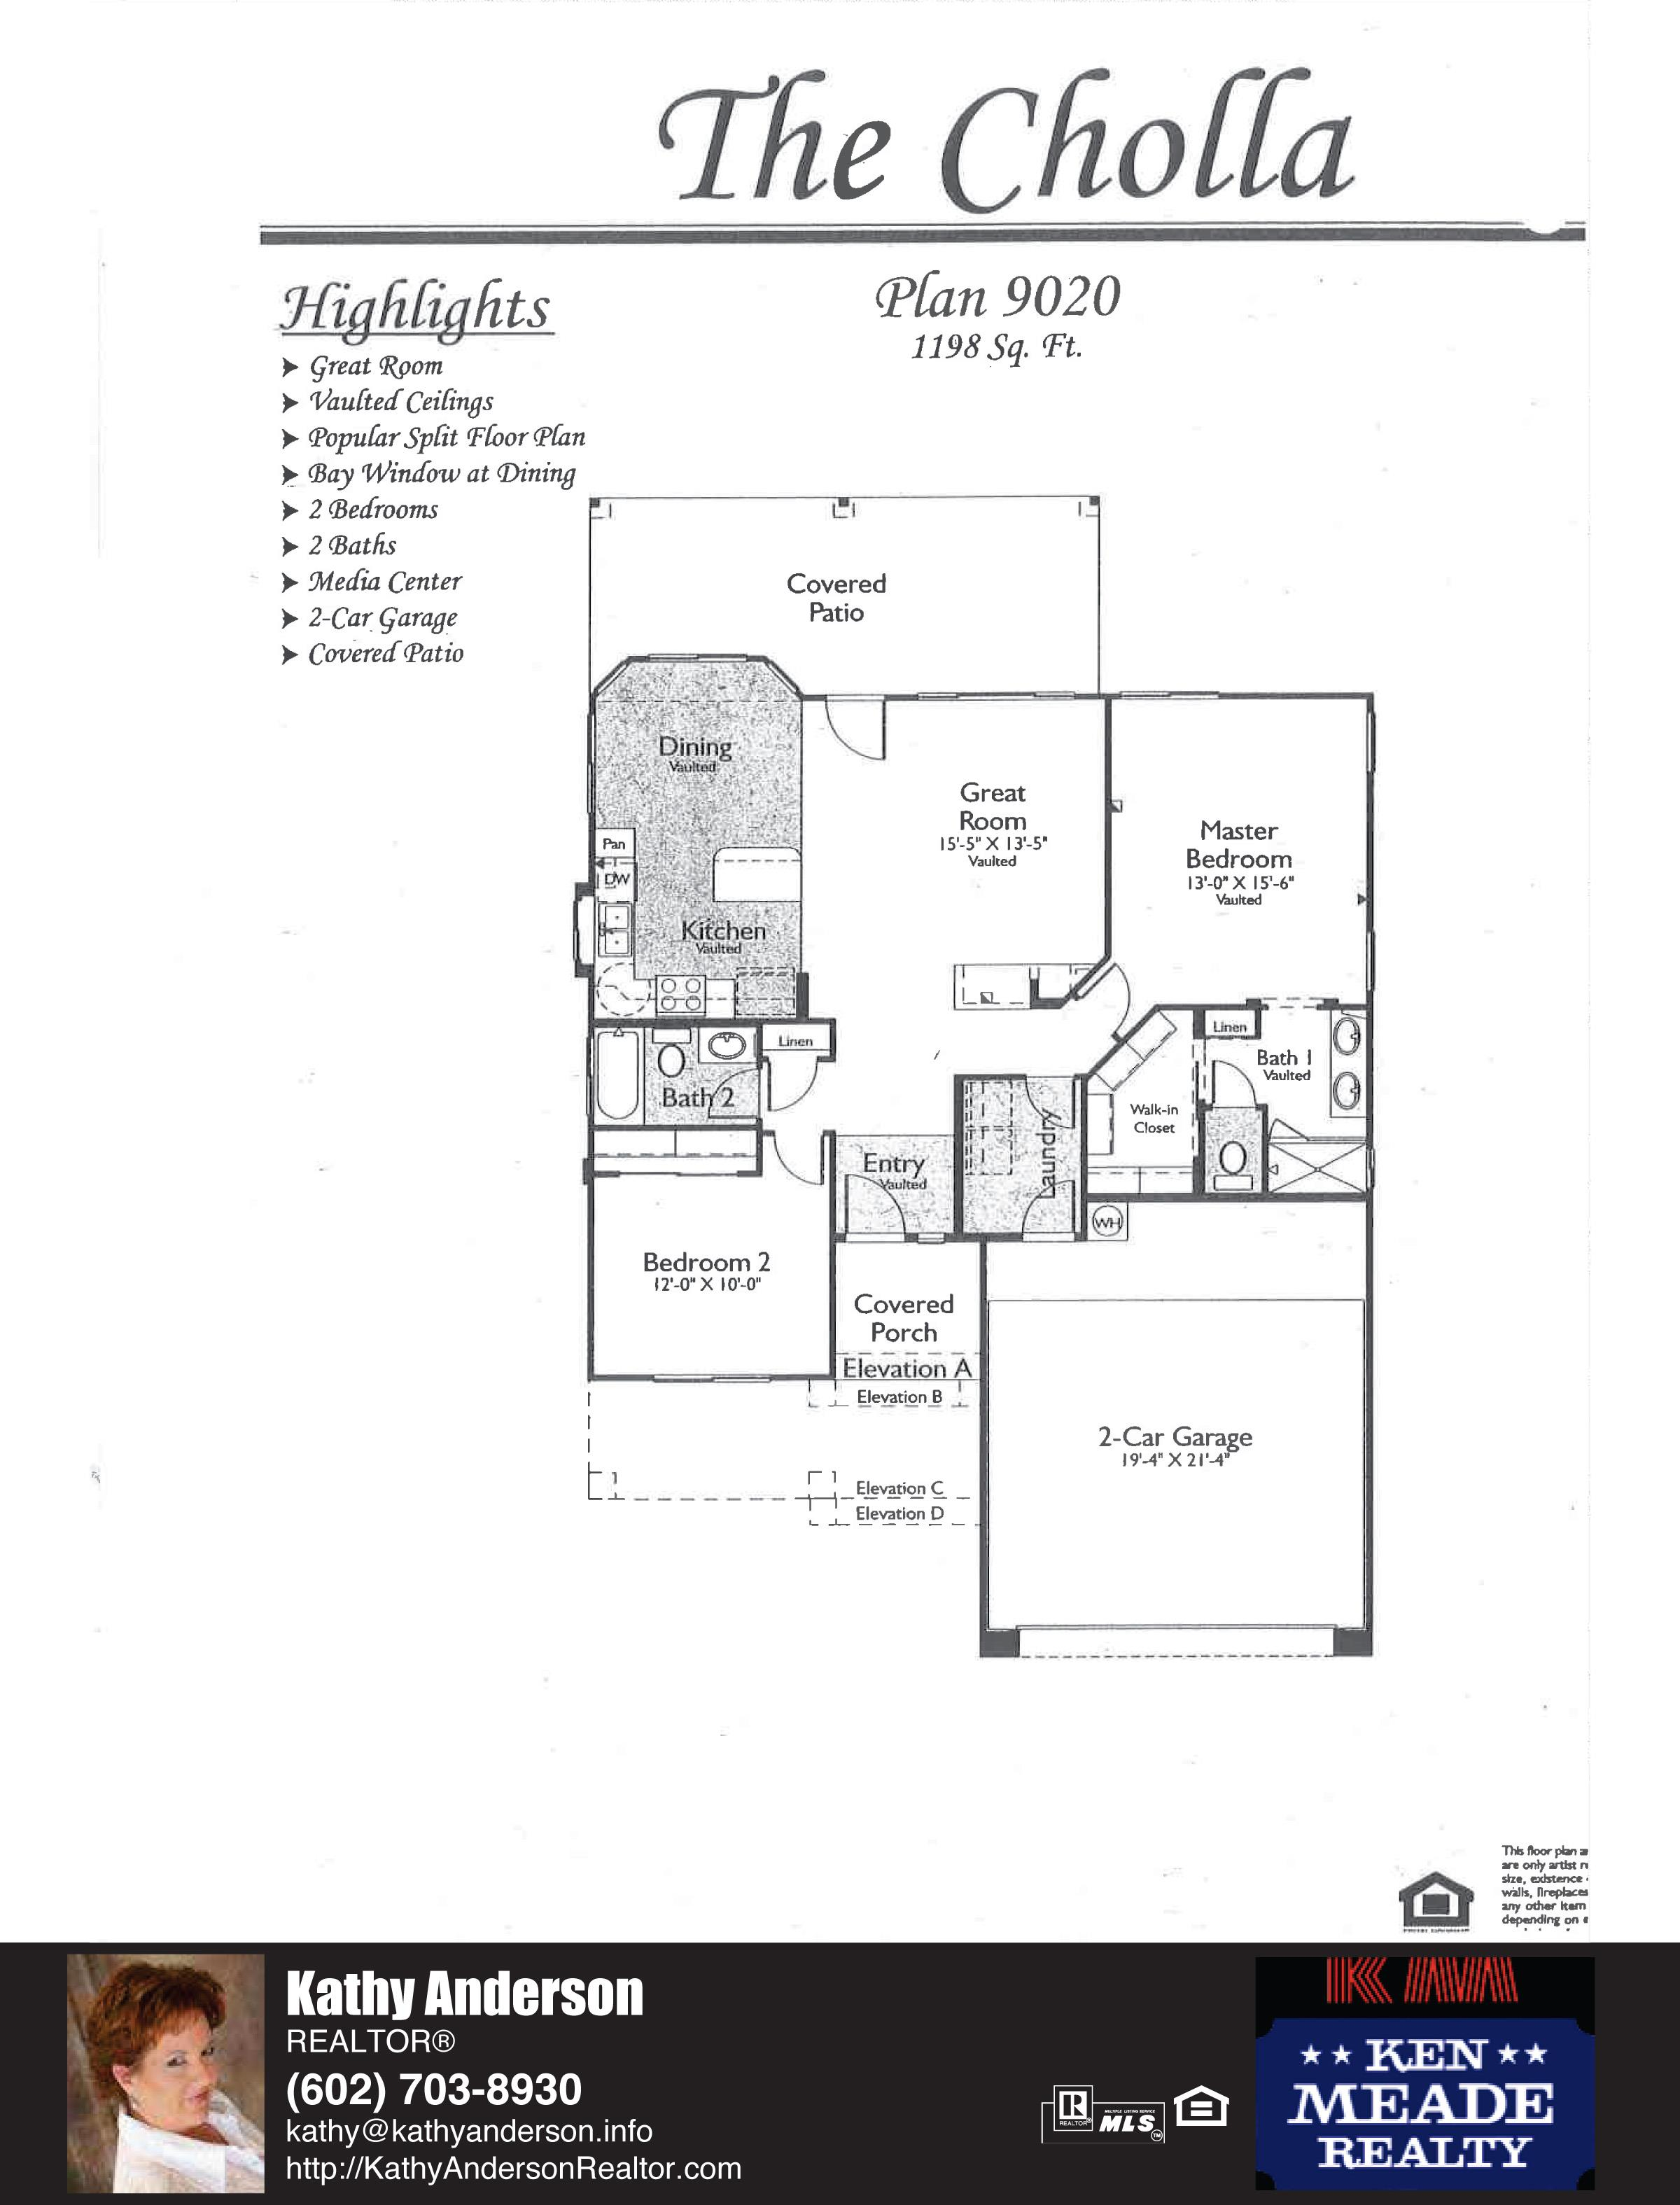 Arizona Traditions Cholla Floor Plan Model Home Plans Floorplans Models in Surprise Arizona AZ Top Ken Meade Realty Realtor agent Kathy Anderson